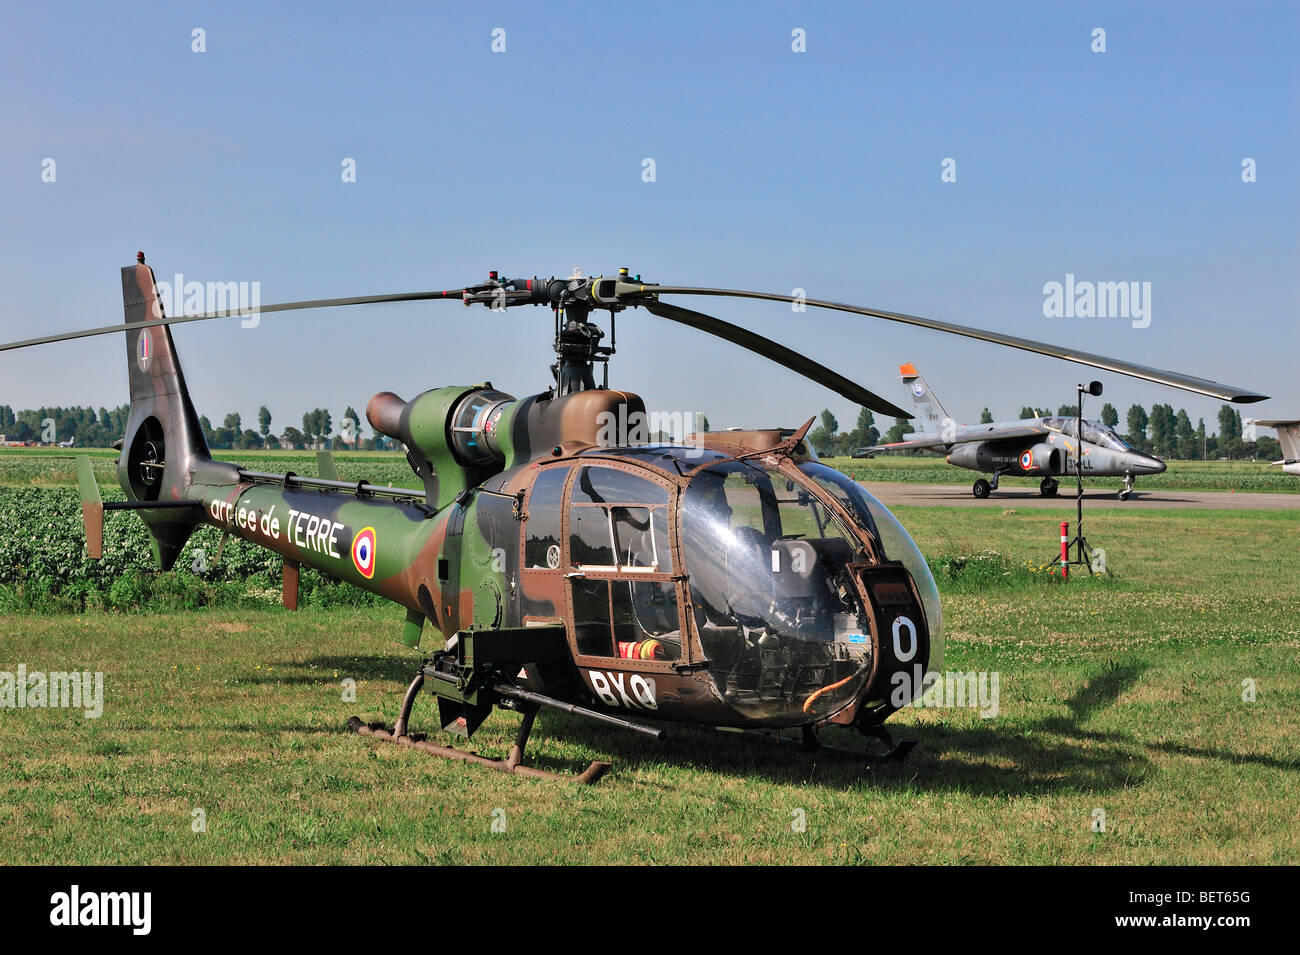 Military helicopter at airshow in Koksijde, Belgium - Stock Image